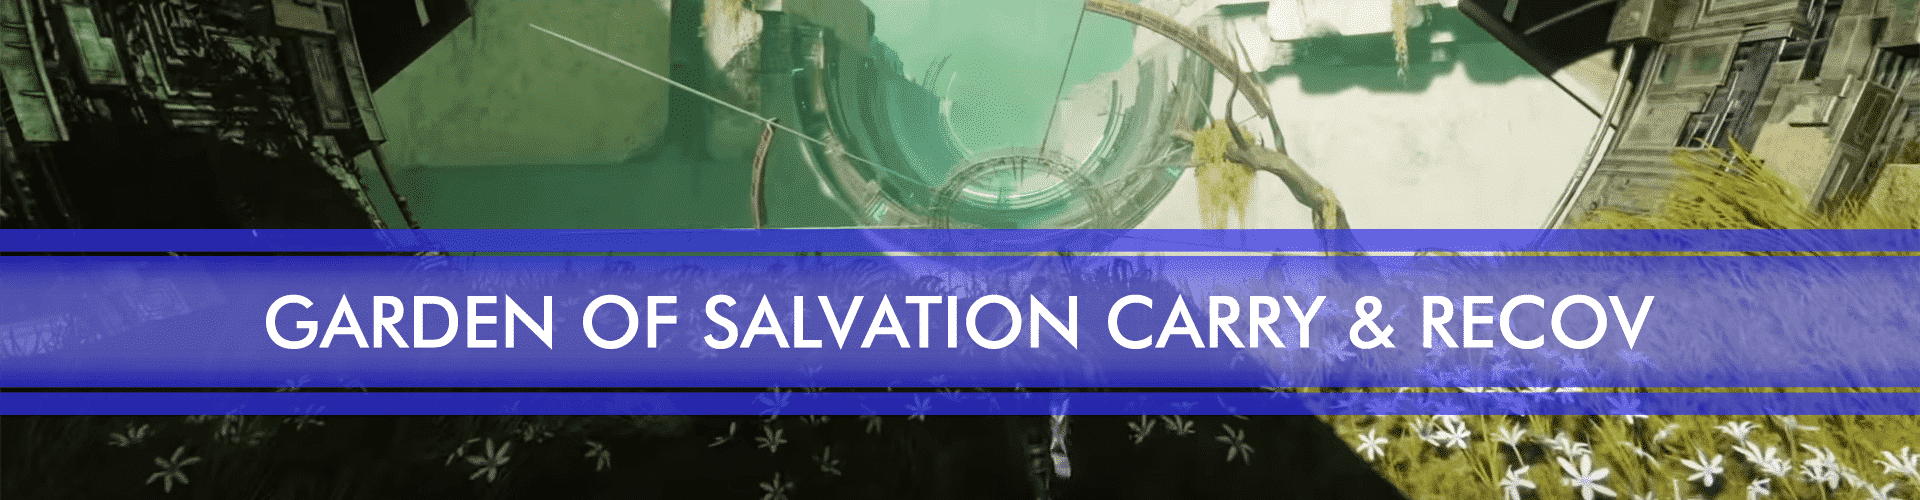 garden of salvation carry post image